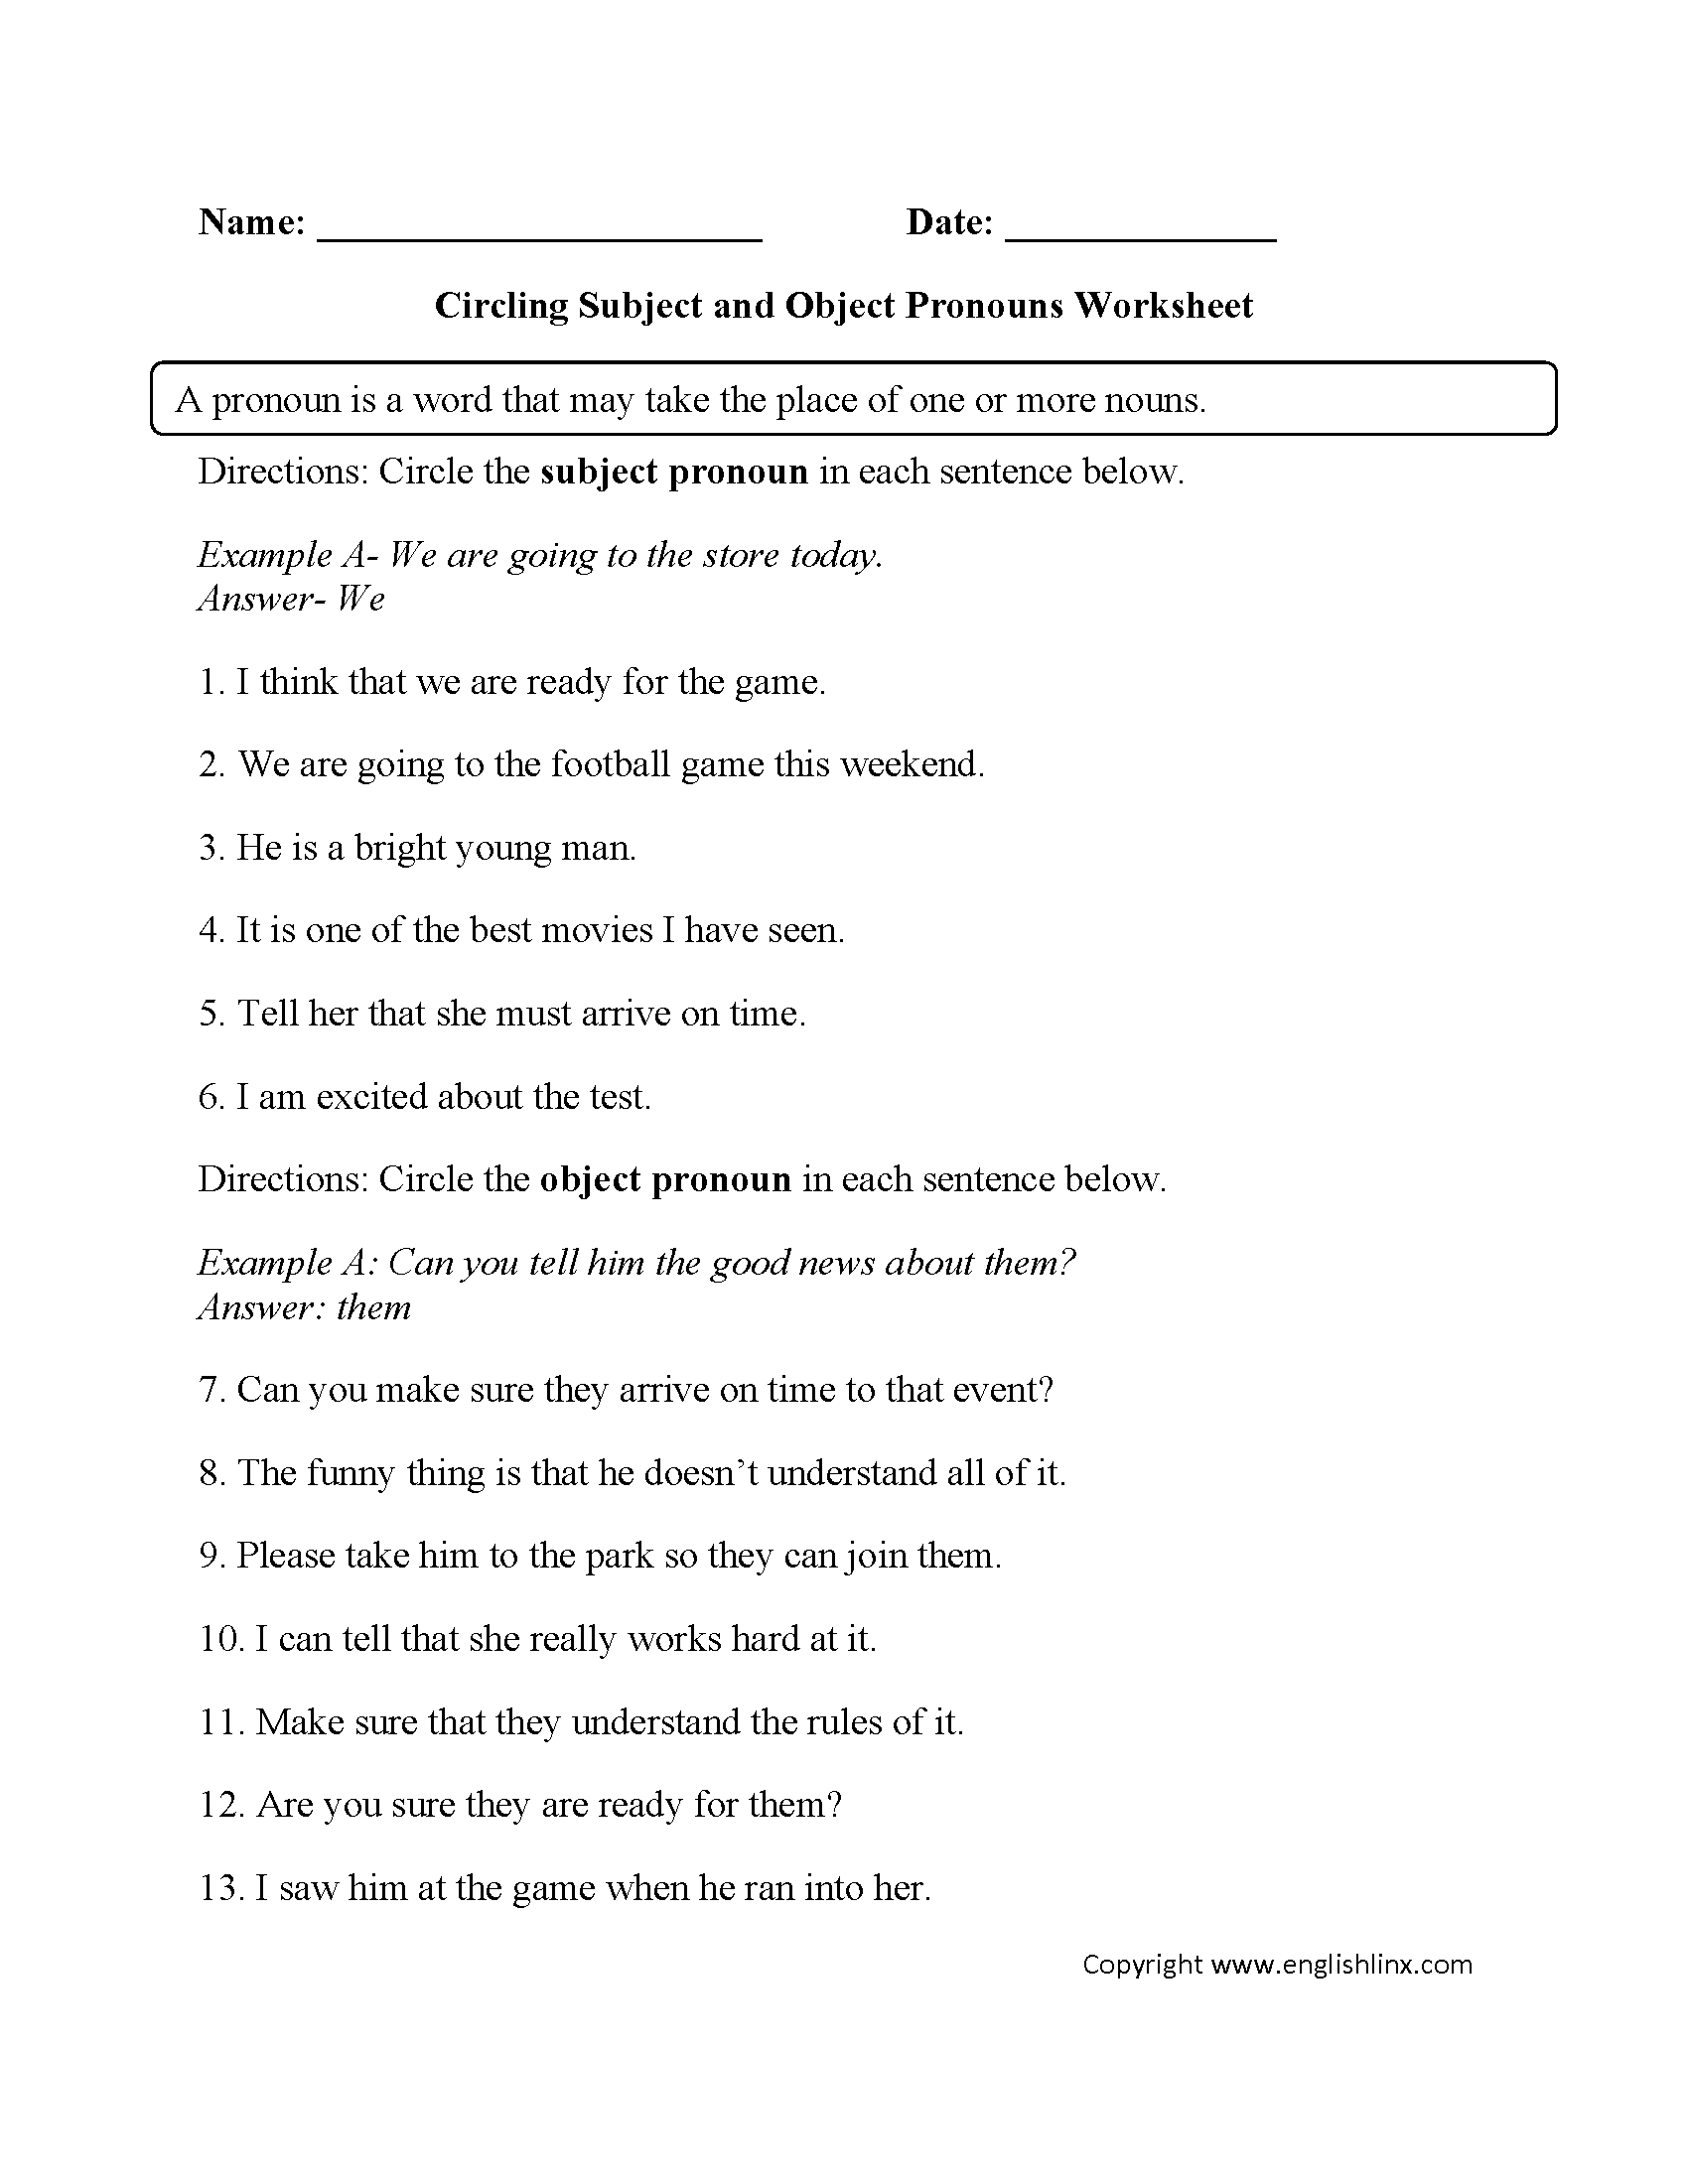 Subject Pronoun Worksheets The Best Worksheets Image Collection